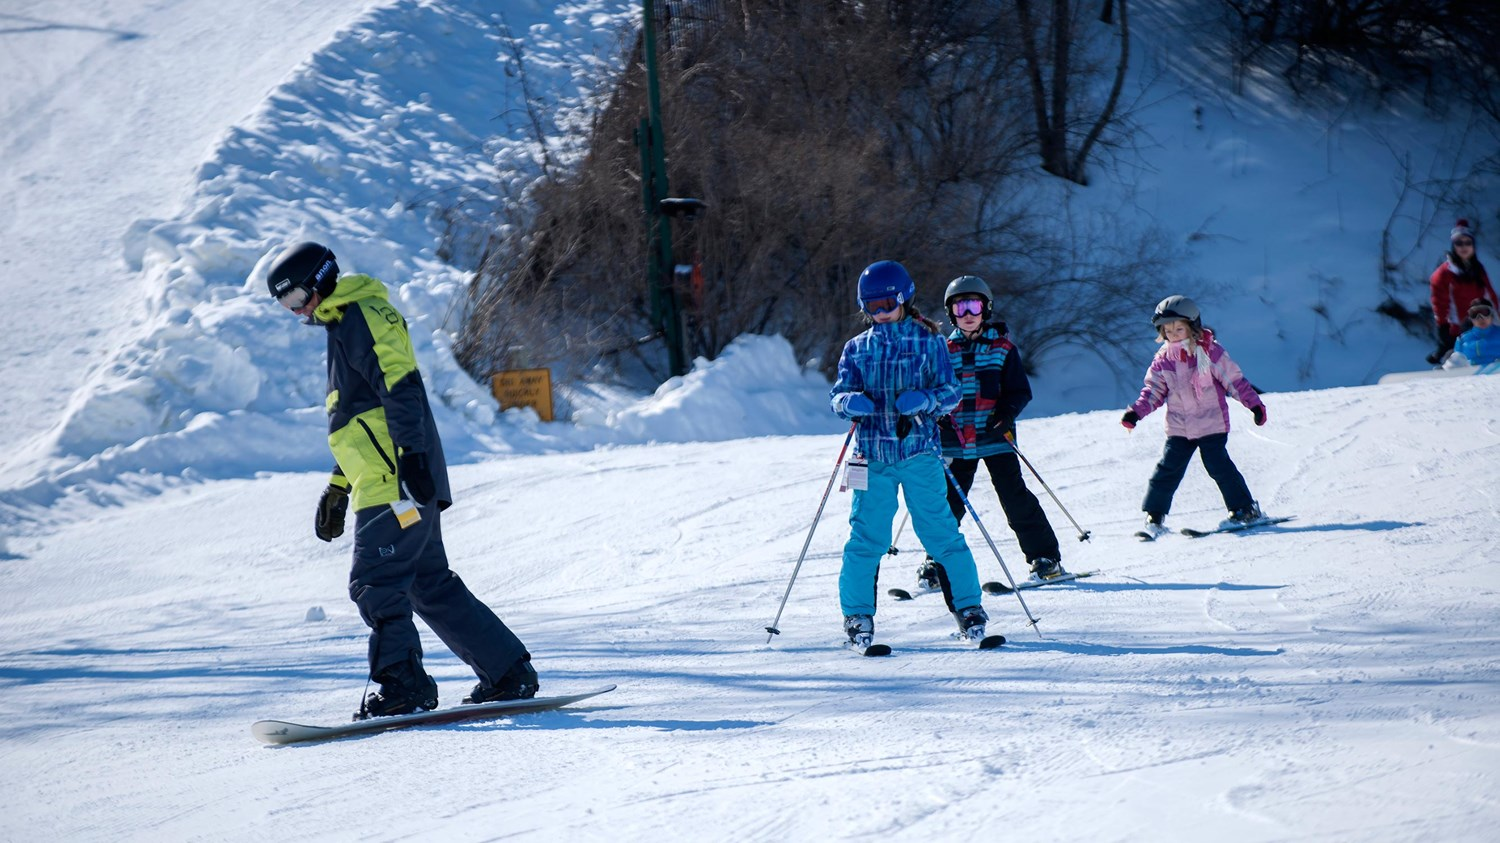 Kids skiing and snowboarding down the slope